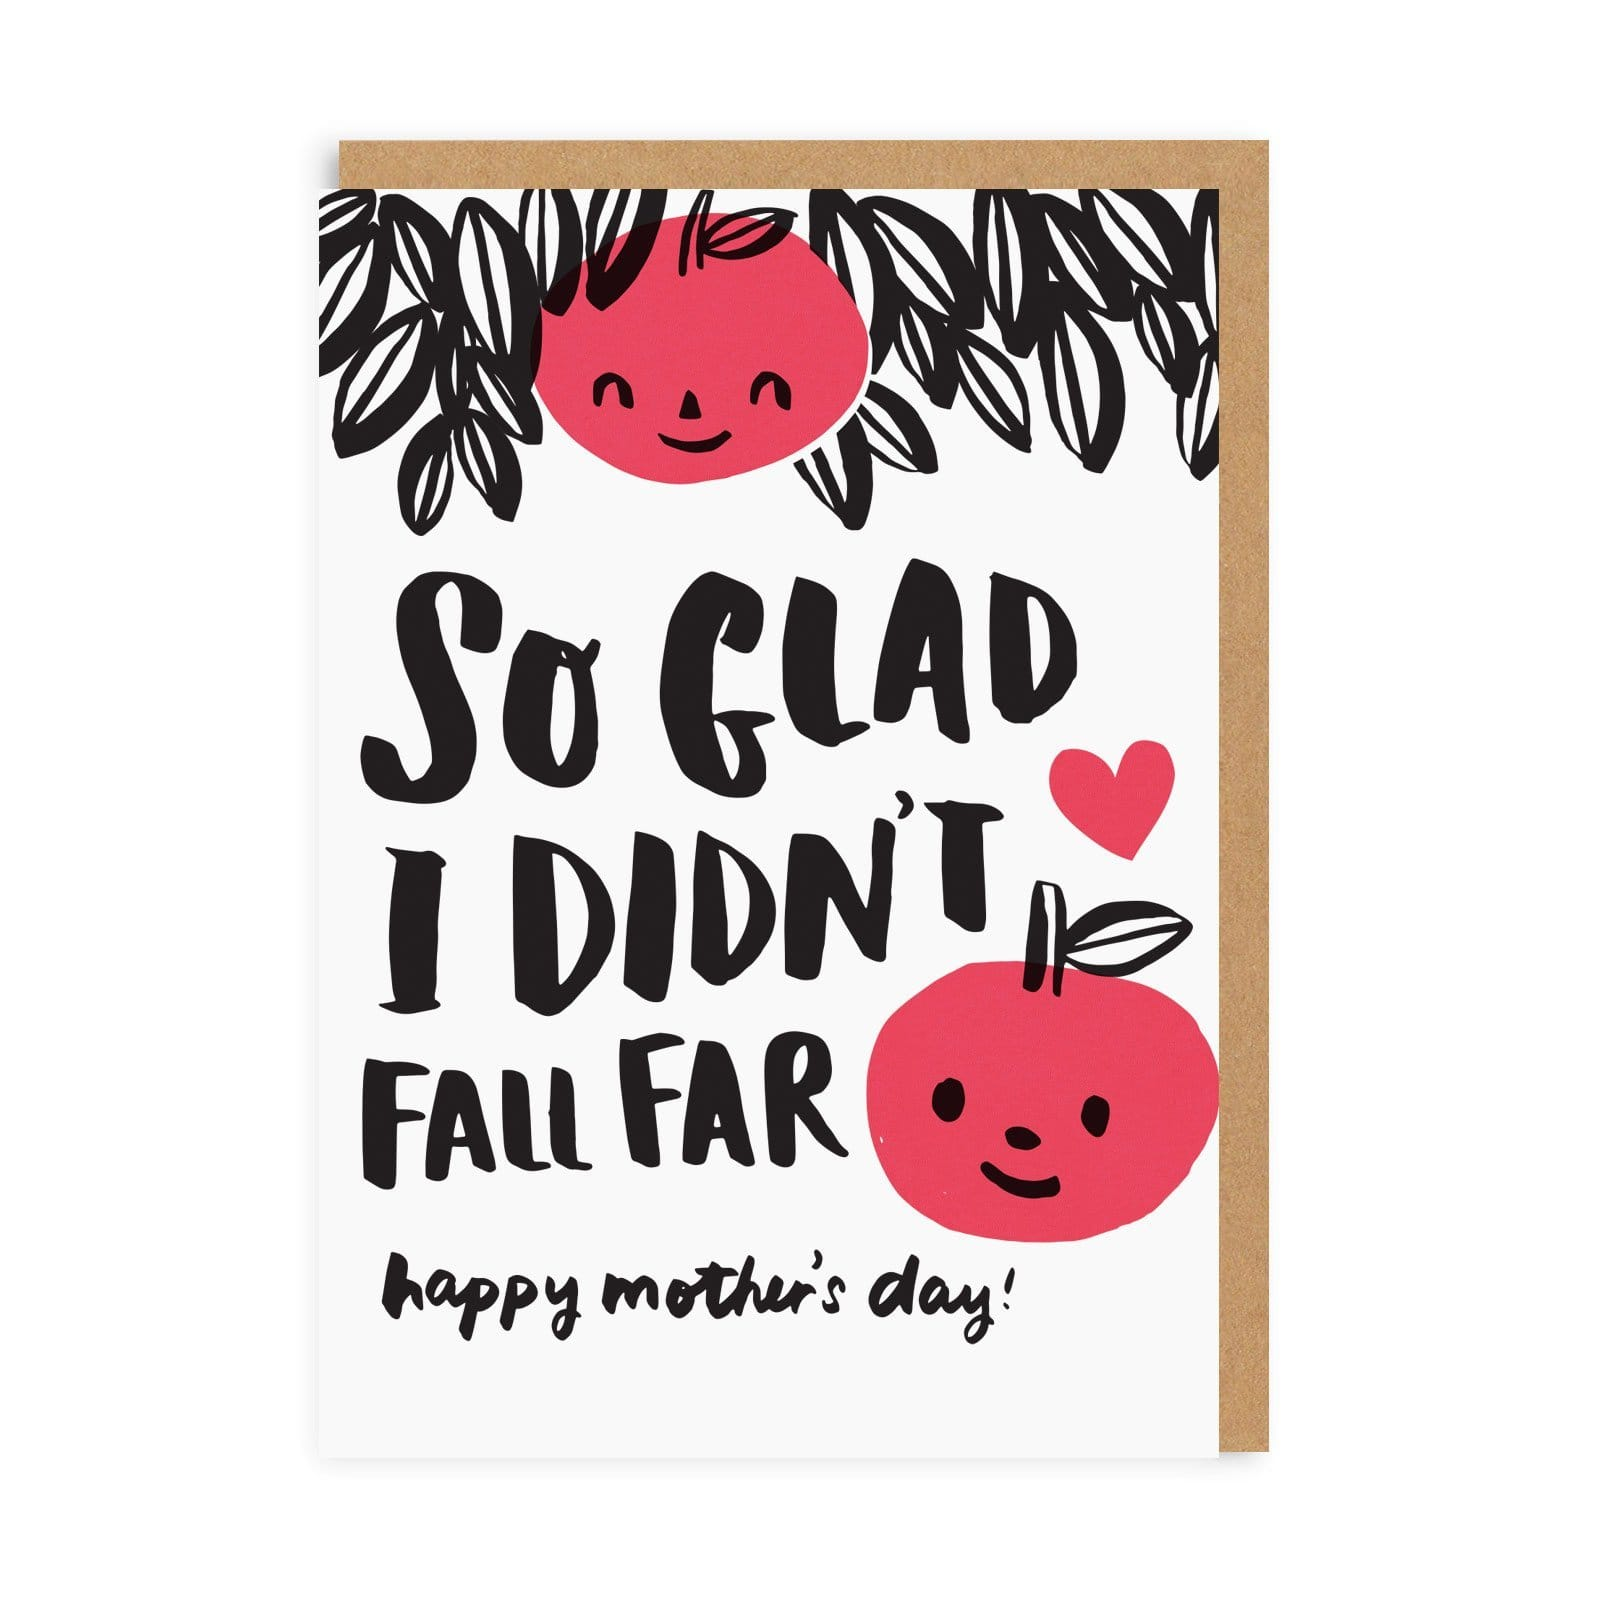 Didn't Fall Far Greeting Card